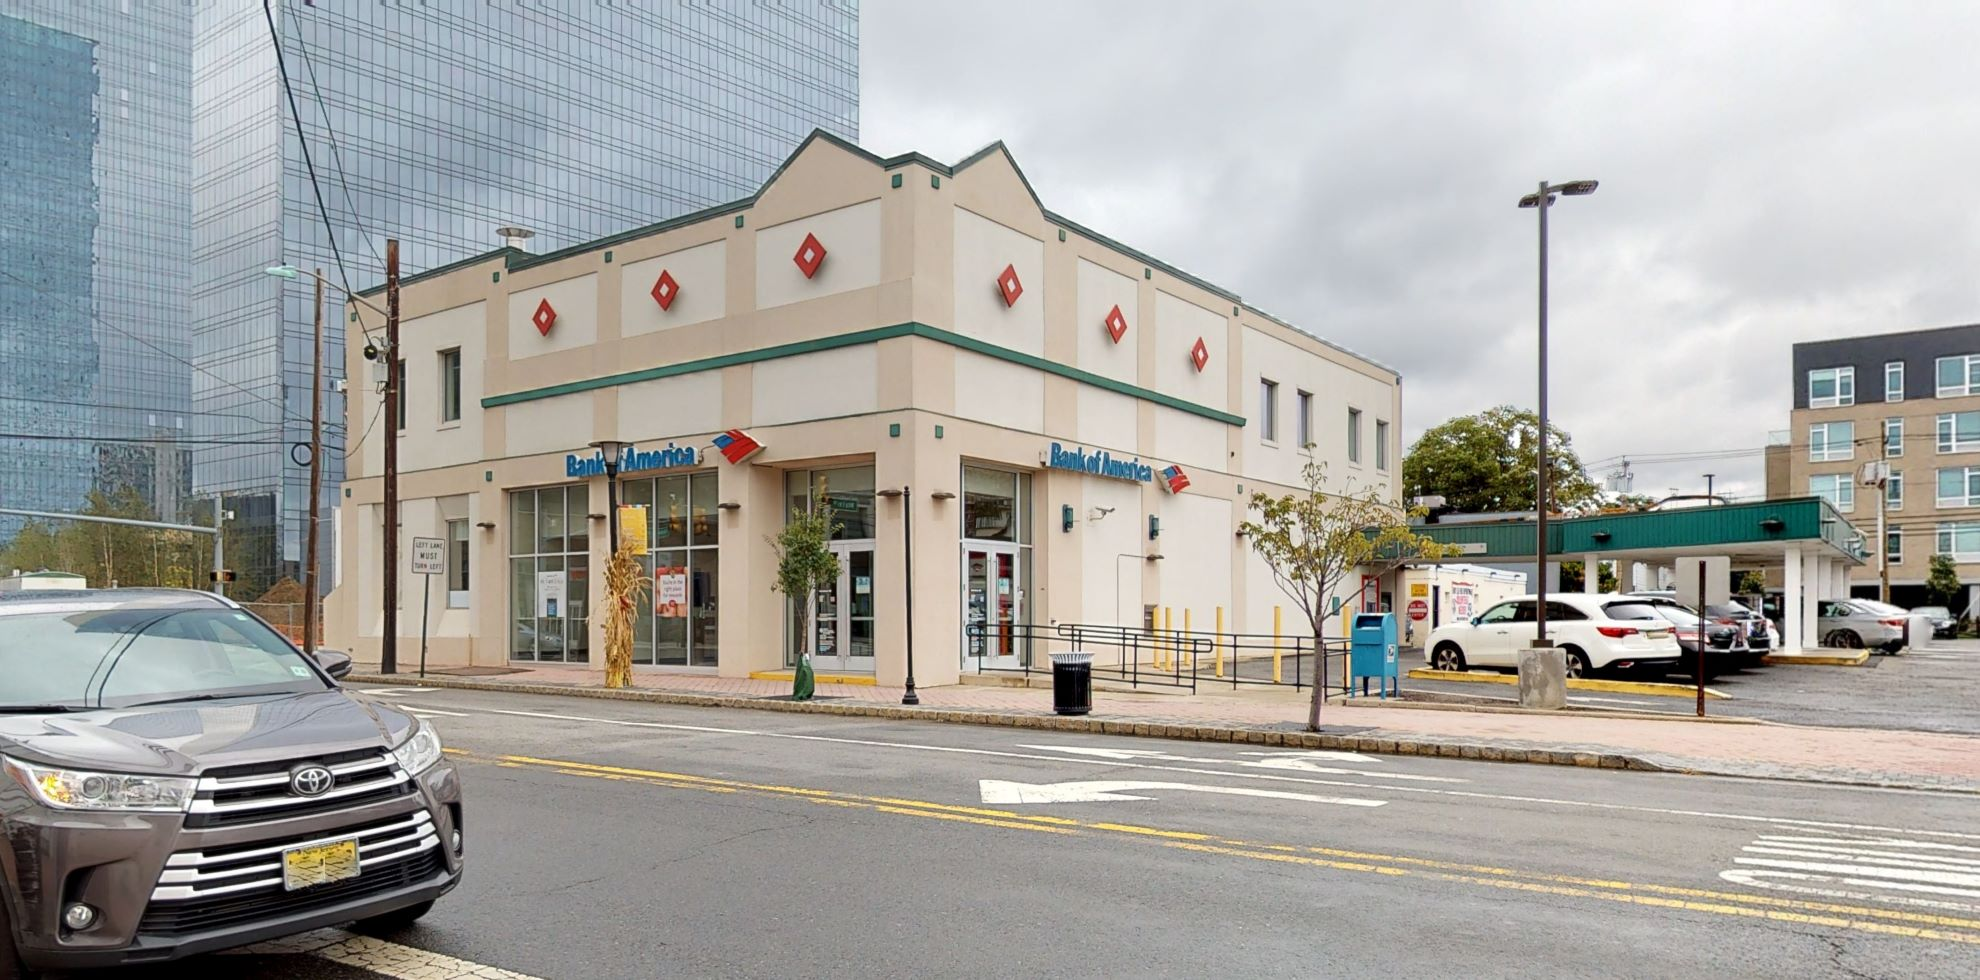 Bank of America financial center with drive-thru ATM | 154 Main St, Fort Lee, NJ 07024